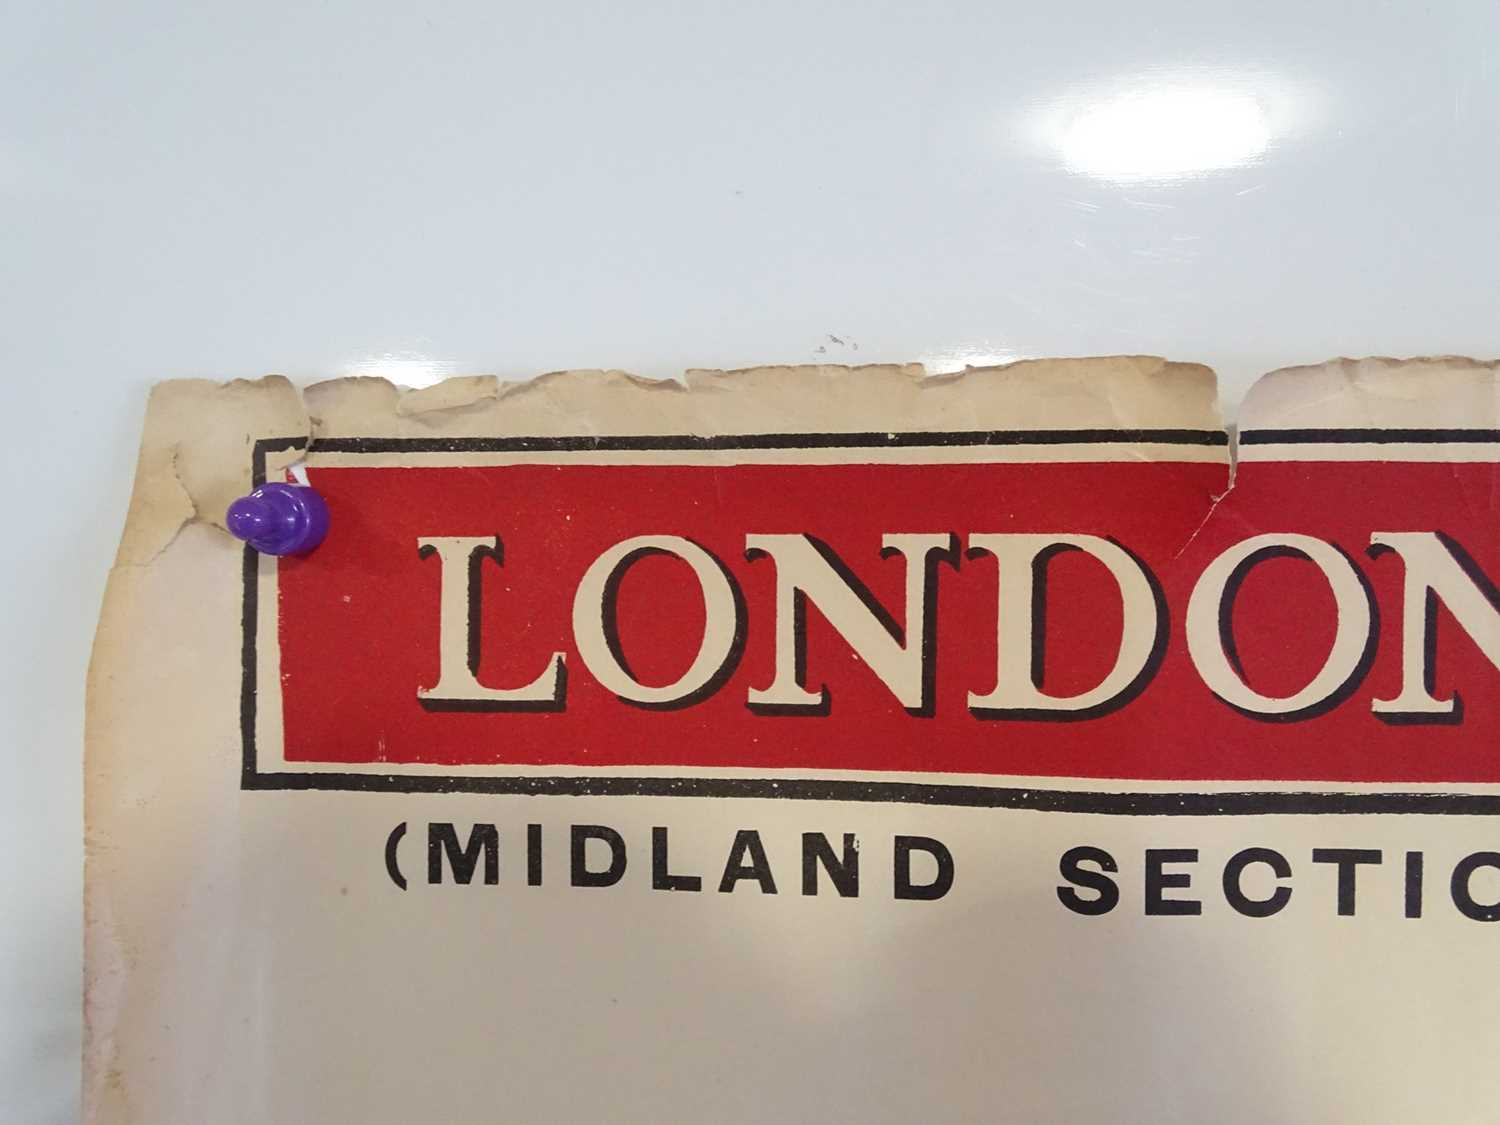 LONDON, MIDLAND and SCOTTISH RAILWAY Mainline (Midland Section) Timetable posters - July 8th - - Image 2 of 15